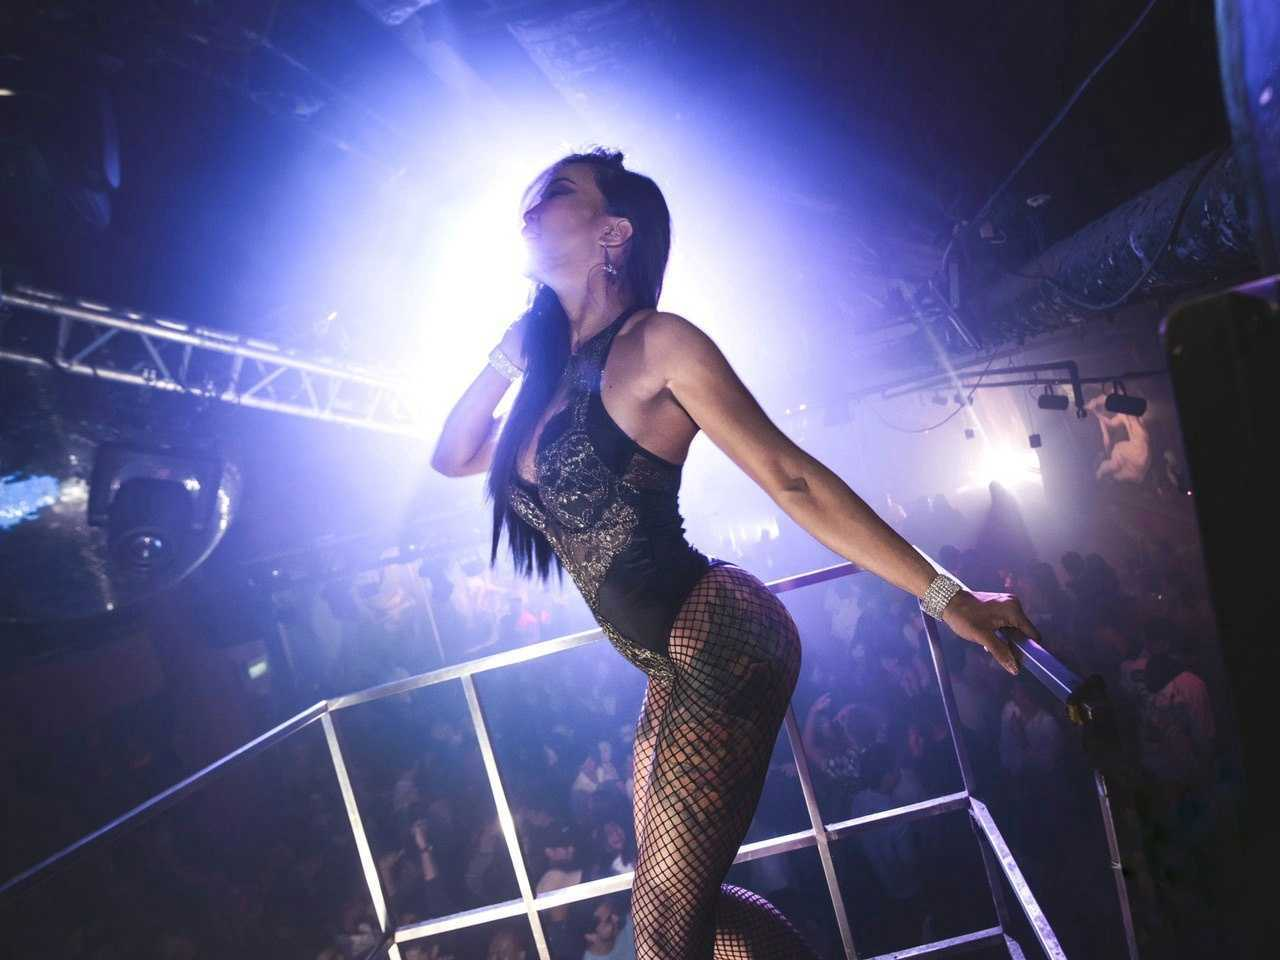 """""""We're The First To Go, Last To Come Back"""": The Precarious Lives Of Nightclub Dancers In A Pandemic"""